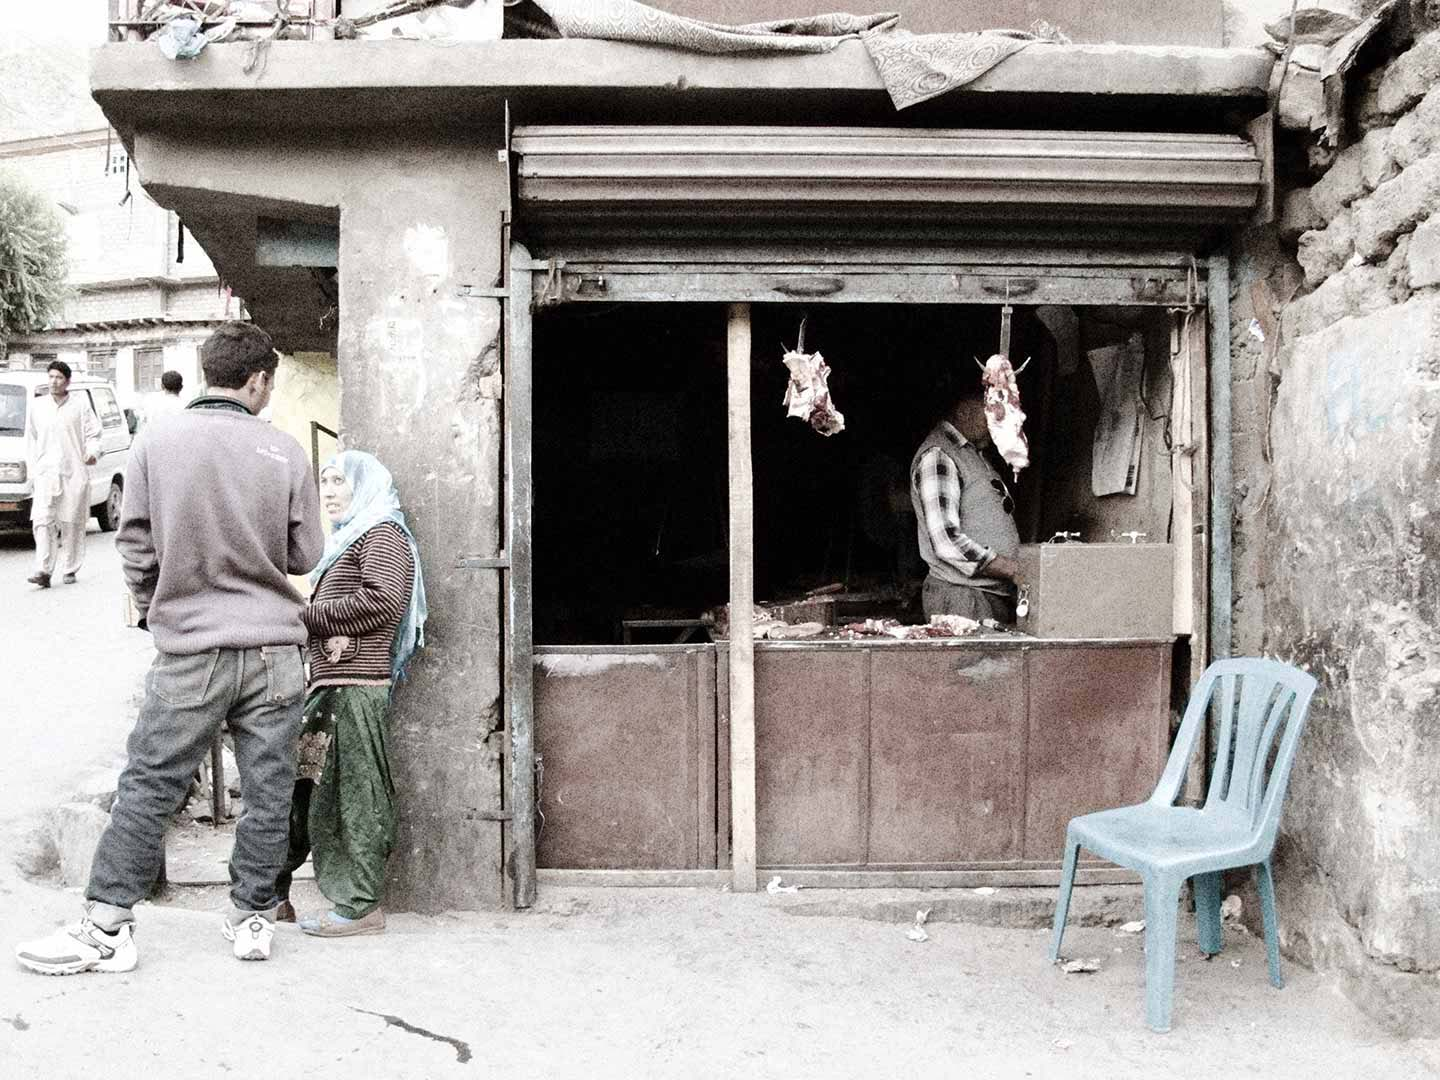 Butcher's shop, Kargil